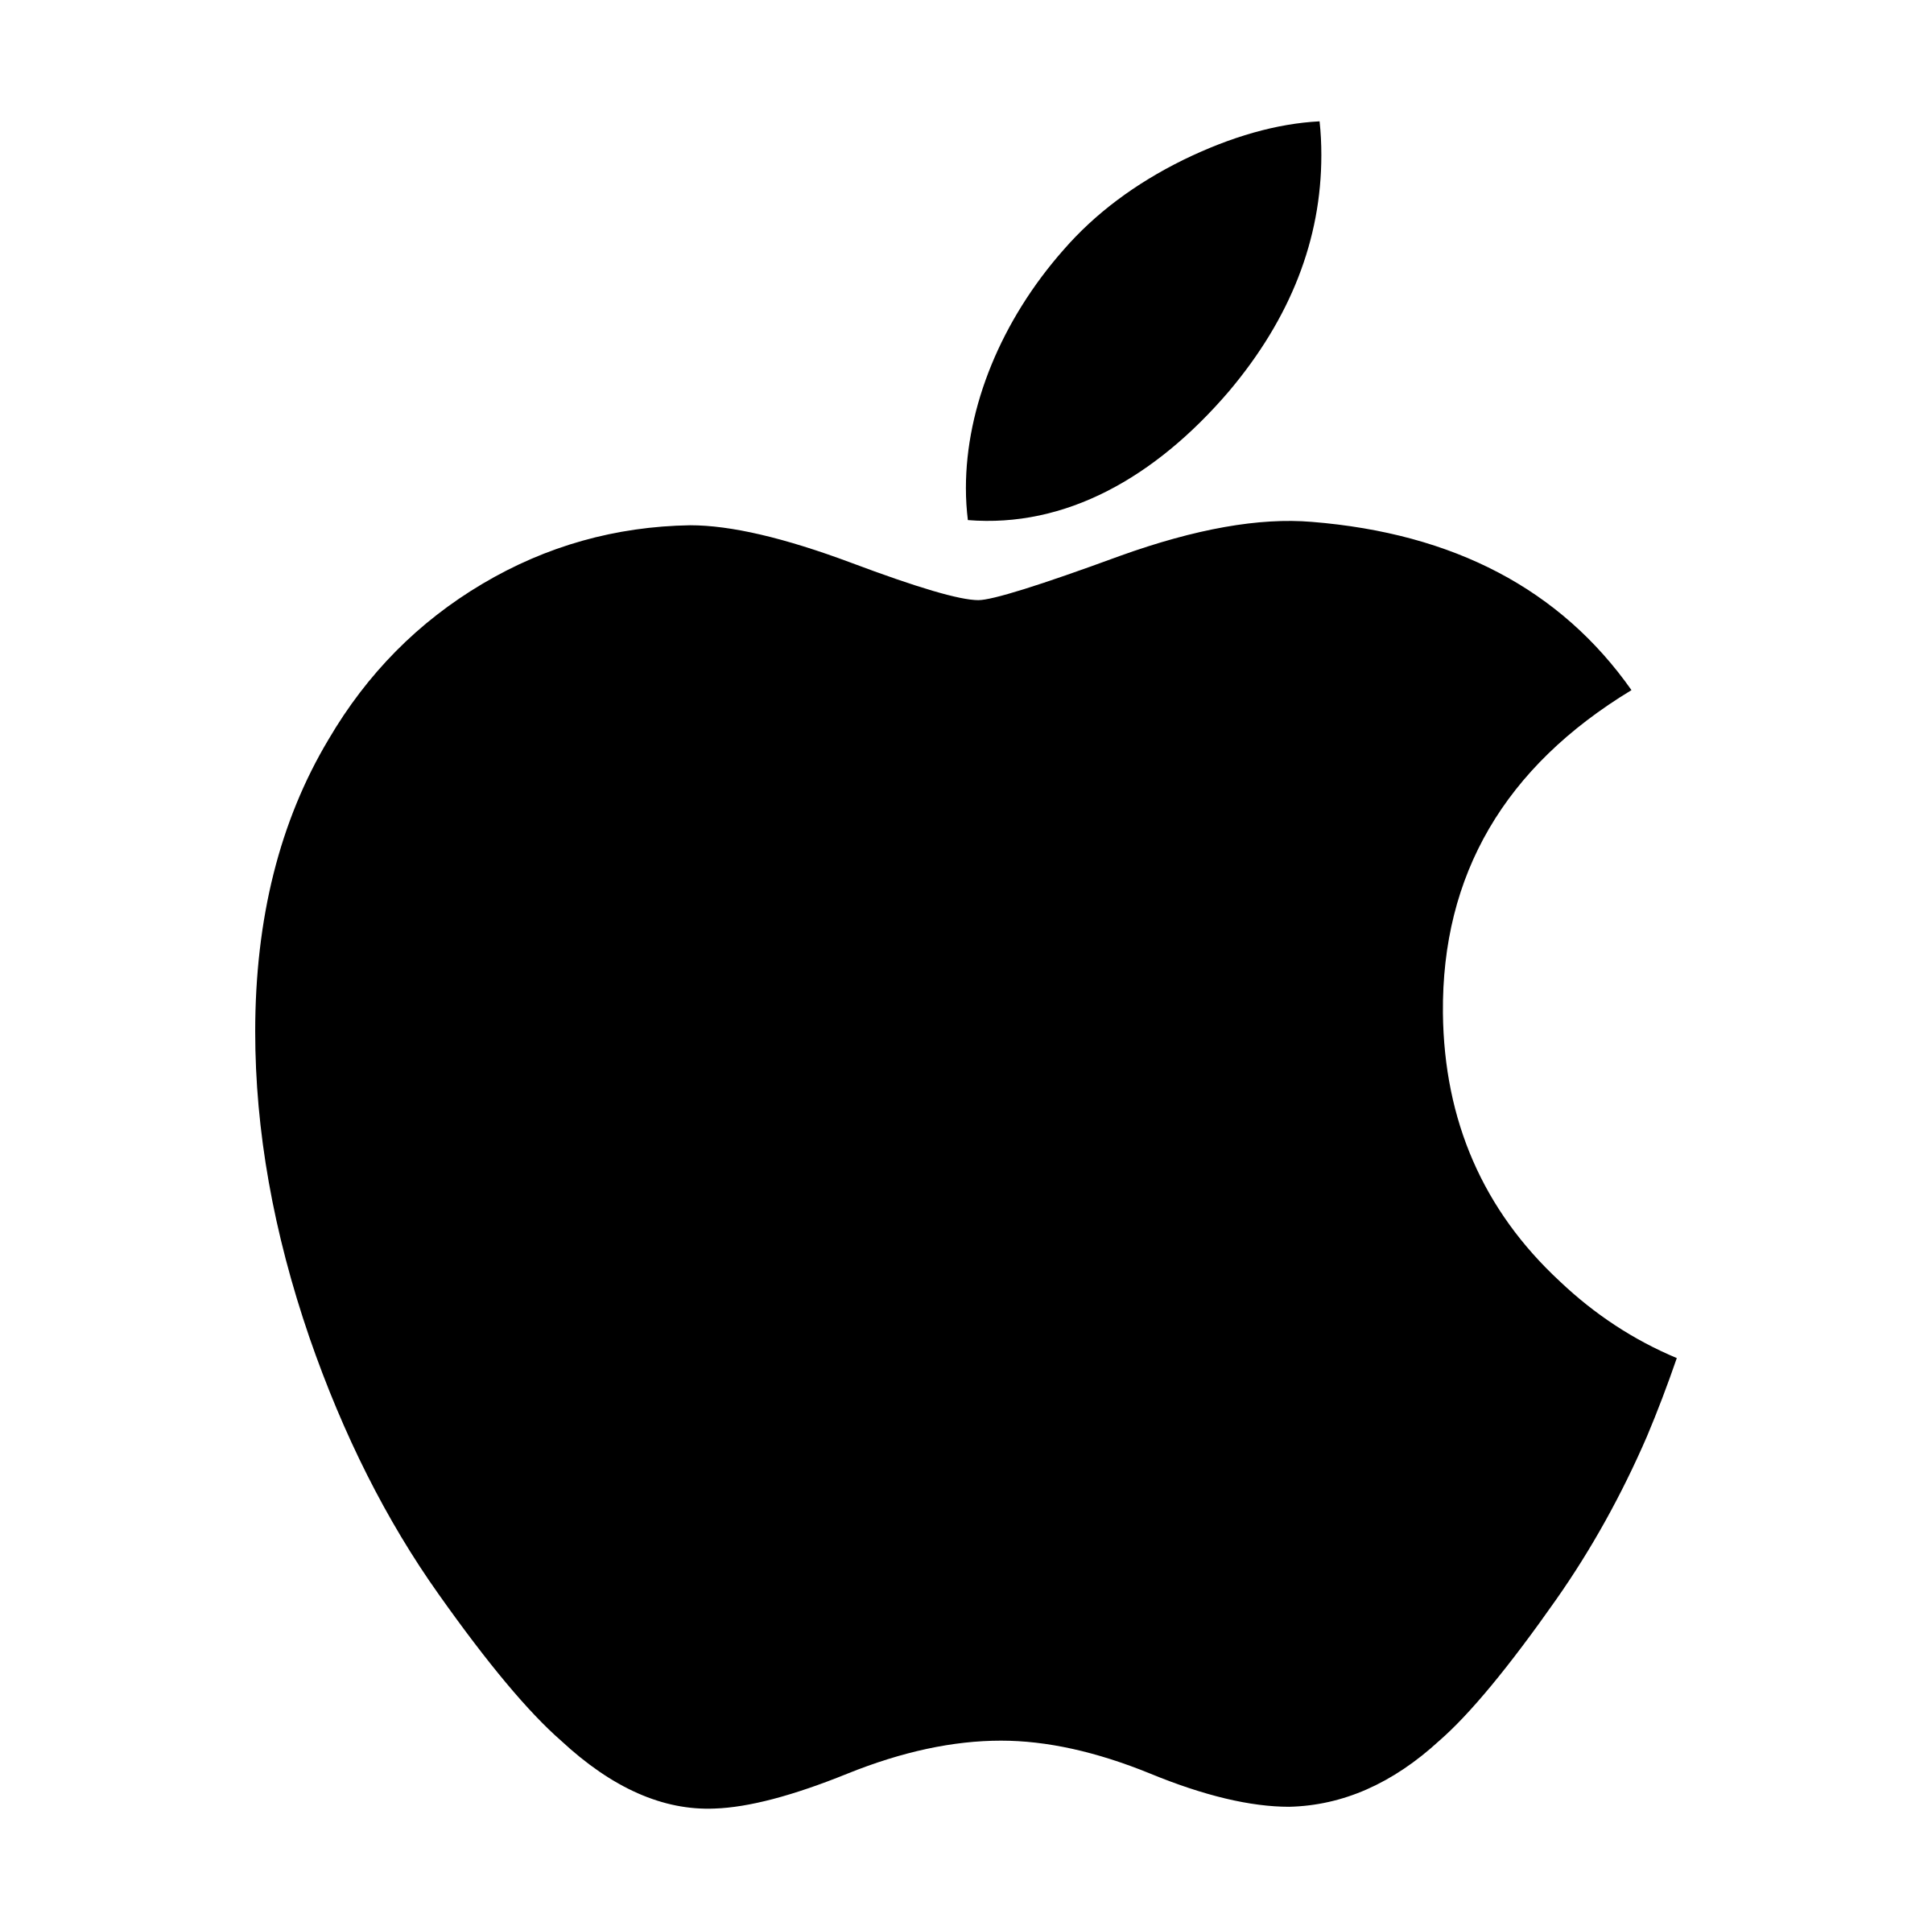 Image result for transparent apple logo